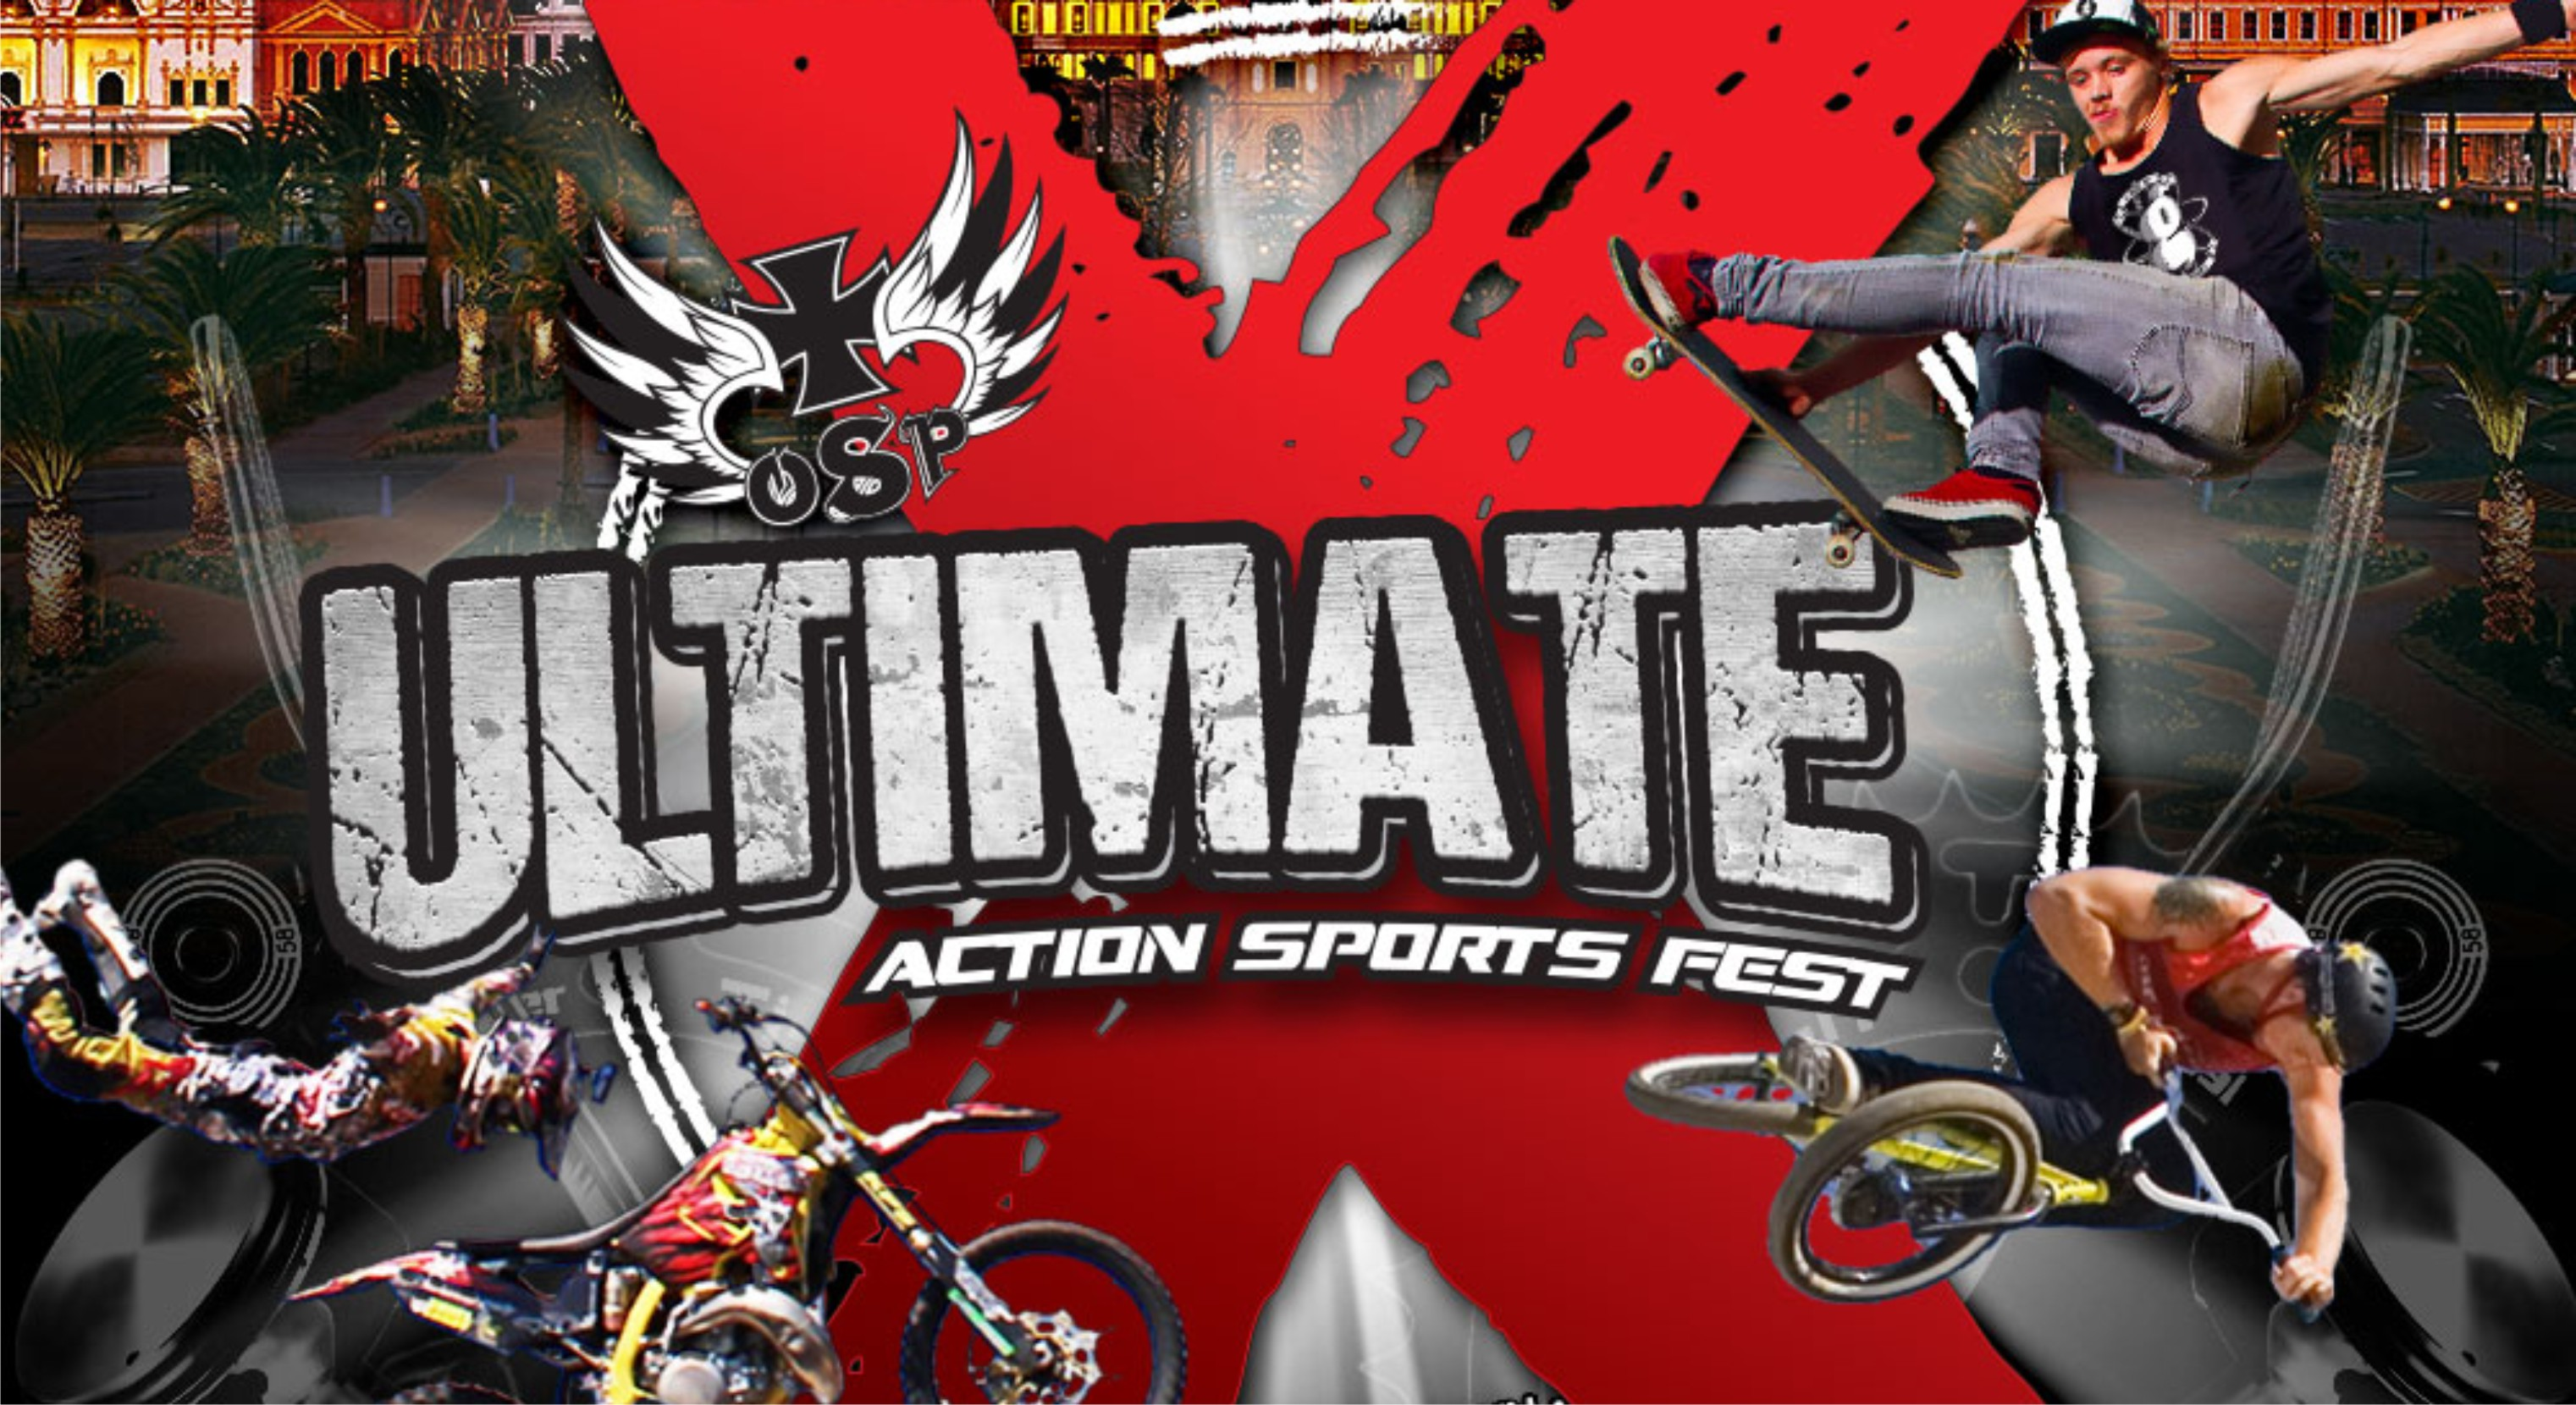 Ultimate X brings the best in Action Sports to Cape Town